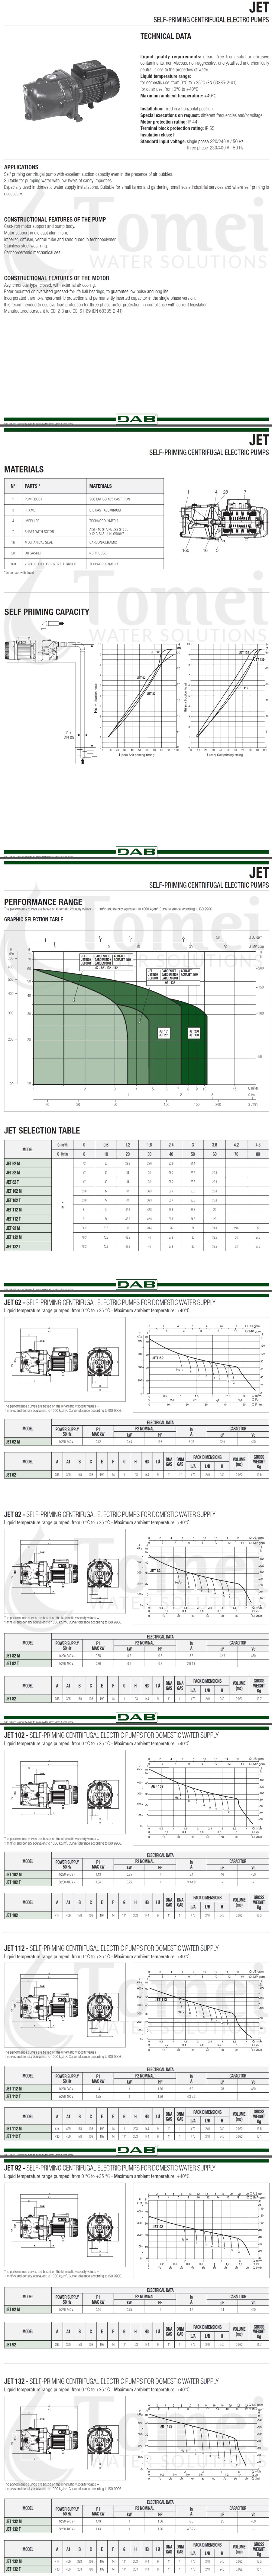 Data sheet DAB JET 132 M